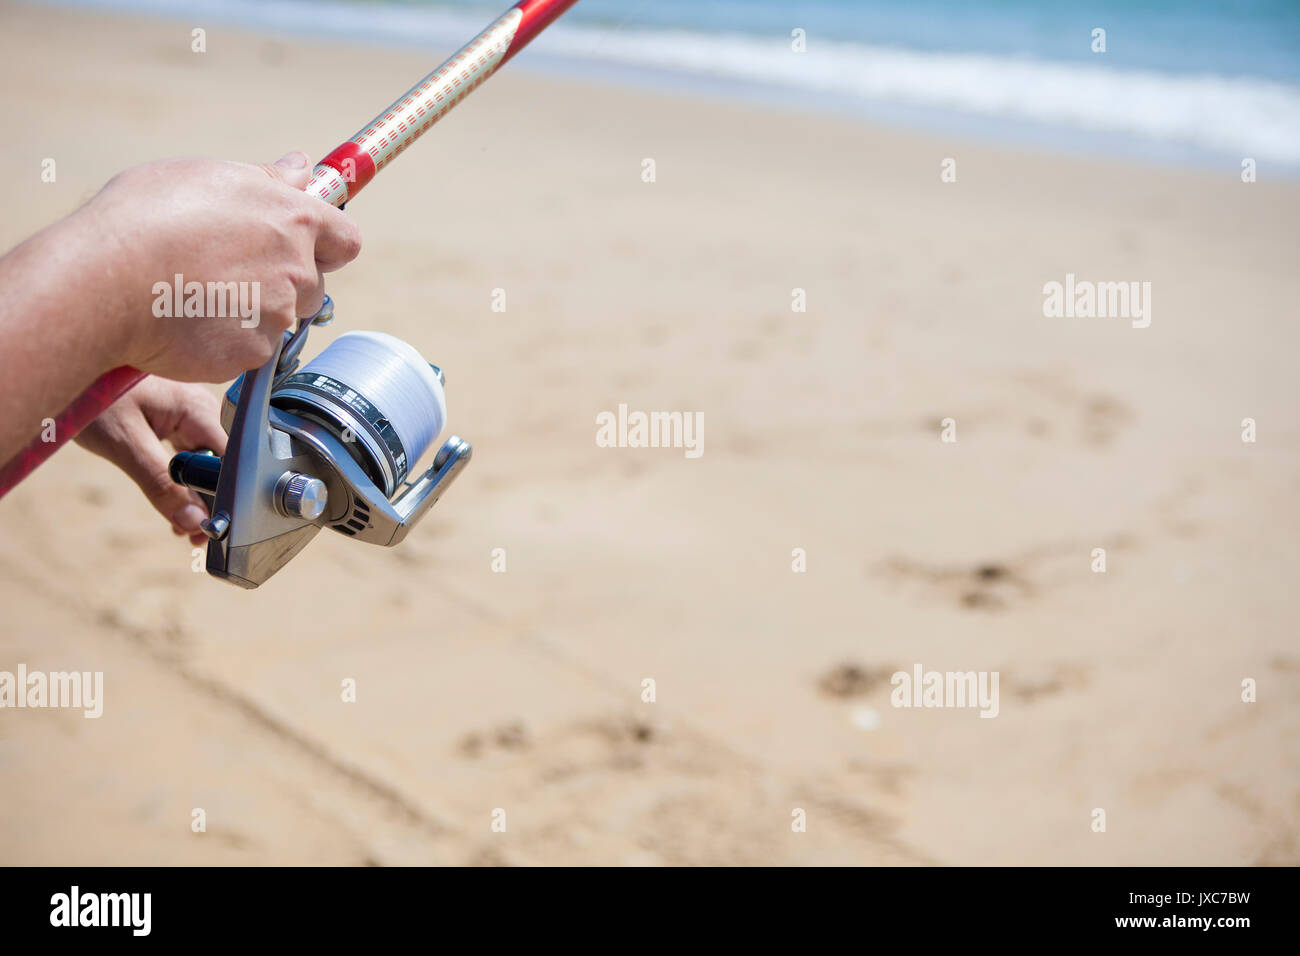 Folding the fishing line. Sea angling sport at the beach - Stock Image